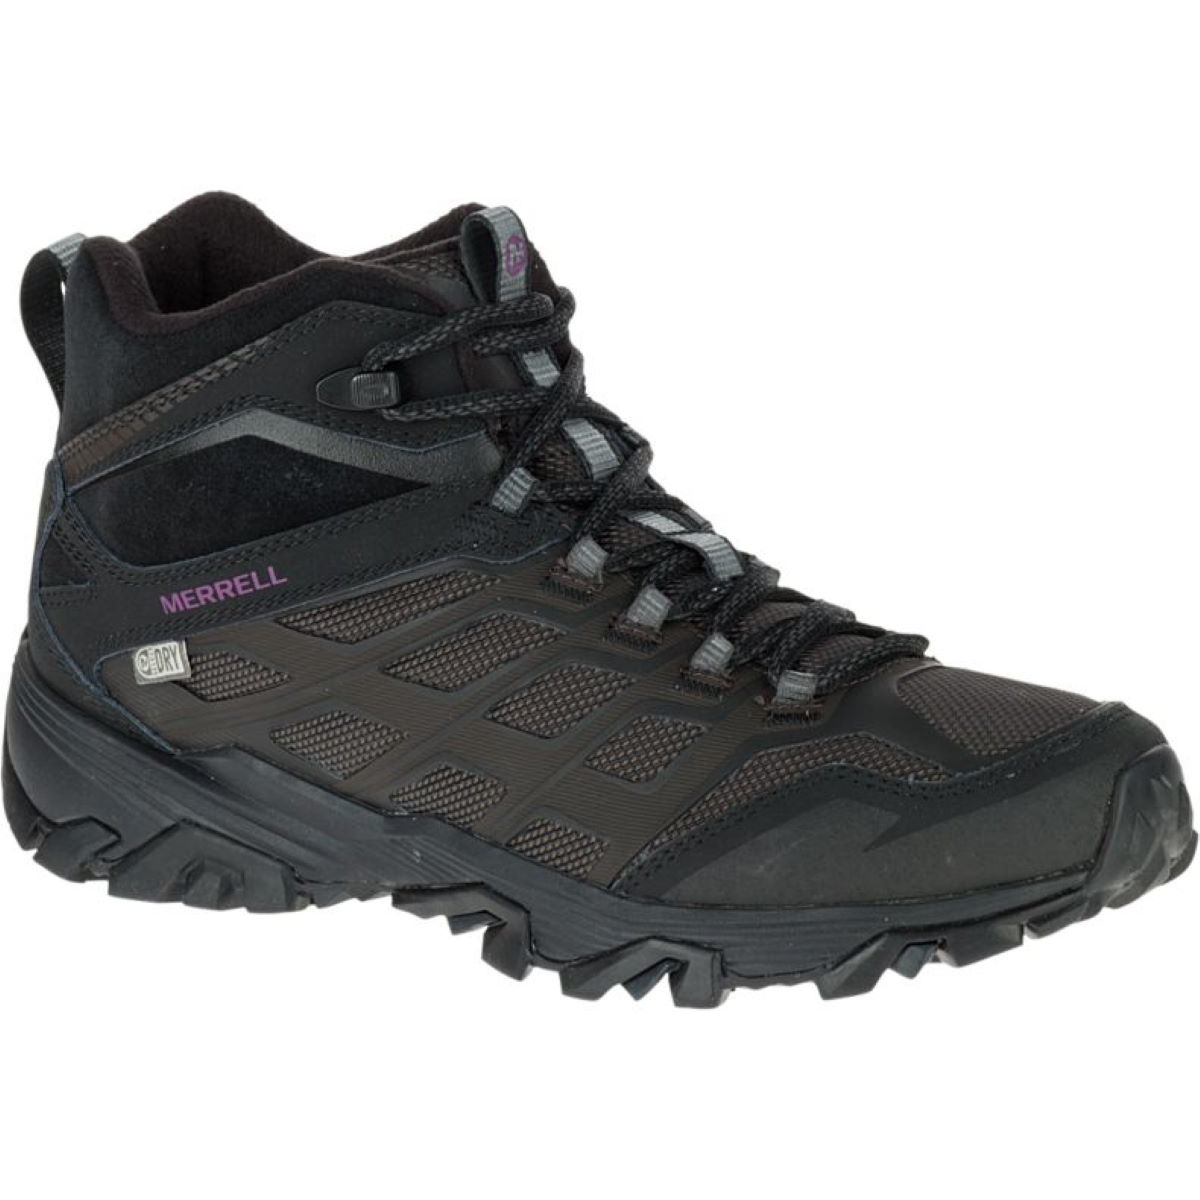 Chaussures Femme Merrell MOAB FST ICE+ THERMO - 5.5 BLACK